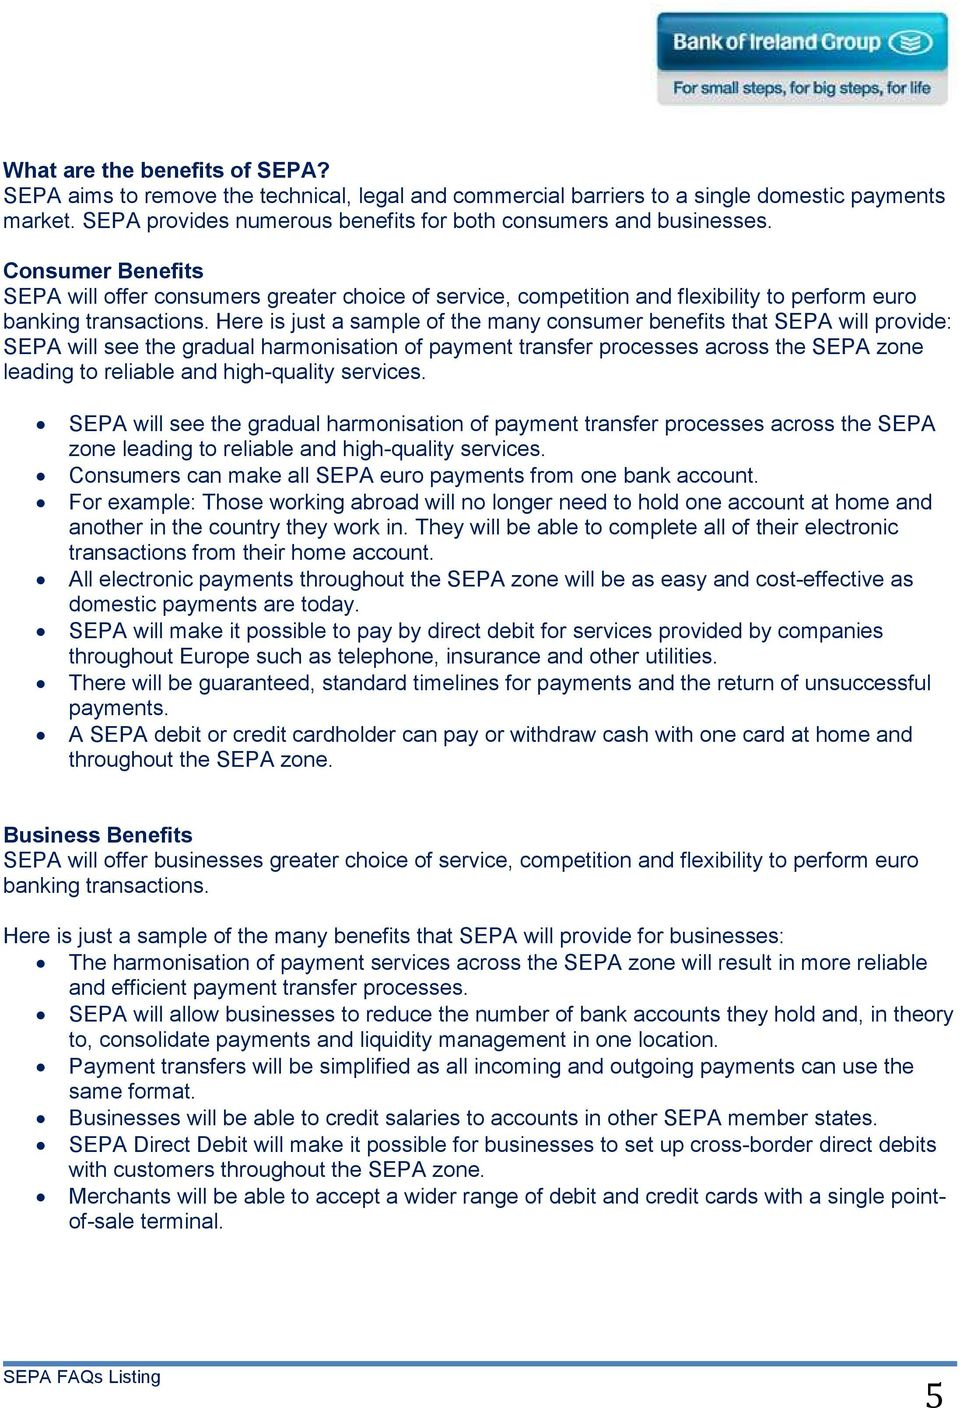 Here is just a sample of the many consumer benefits that SEPA will provide: SEPA will see the gradual harmonisation of payment transfer processes across the SEPA zone leading to reliable and